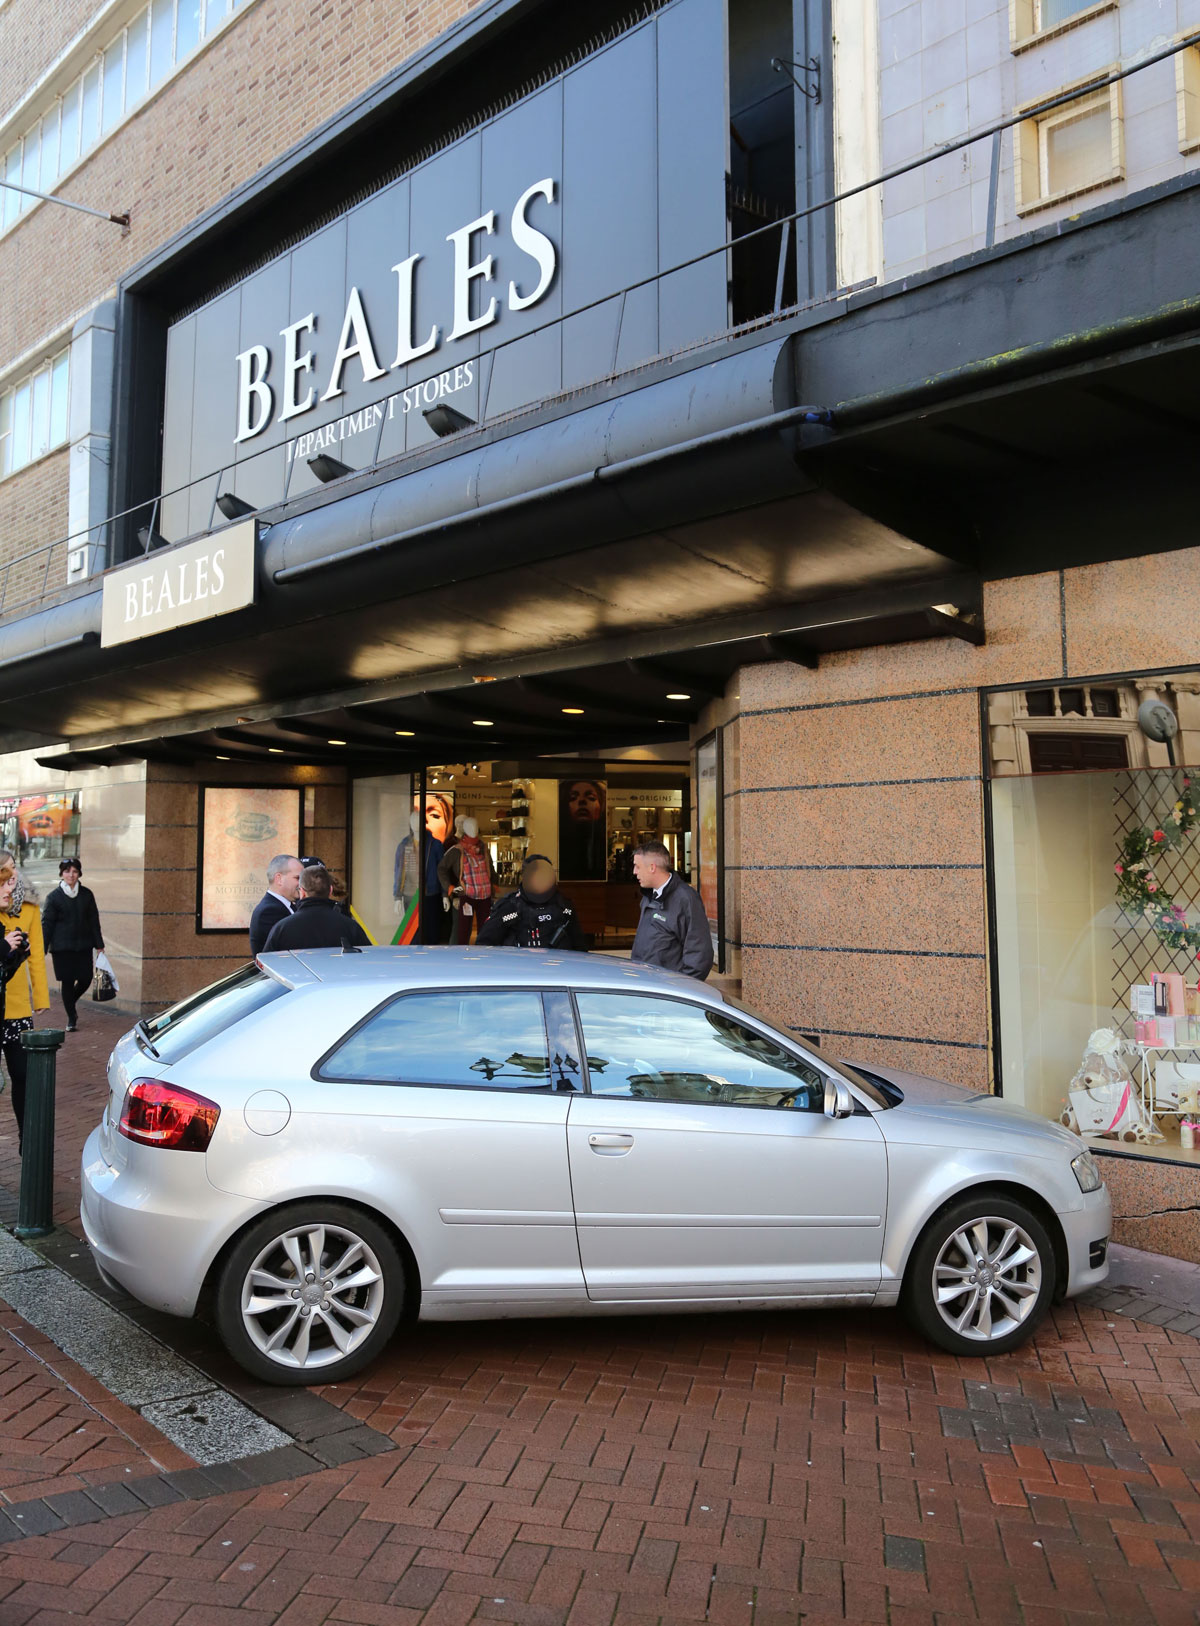 Driverless car crashes into front of Beales department store